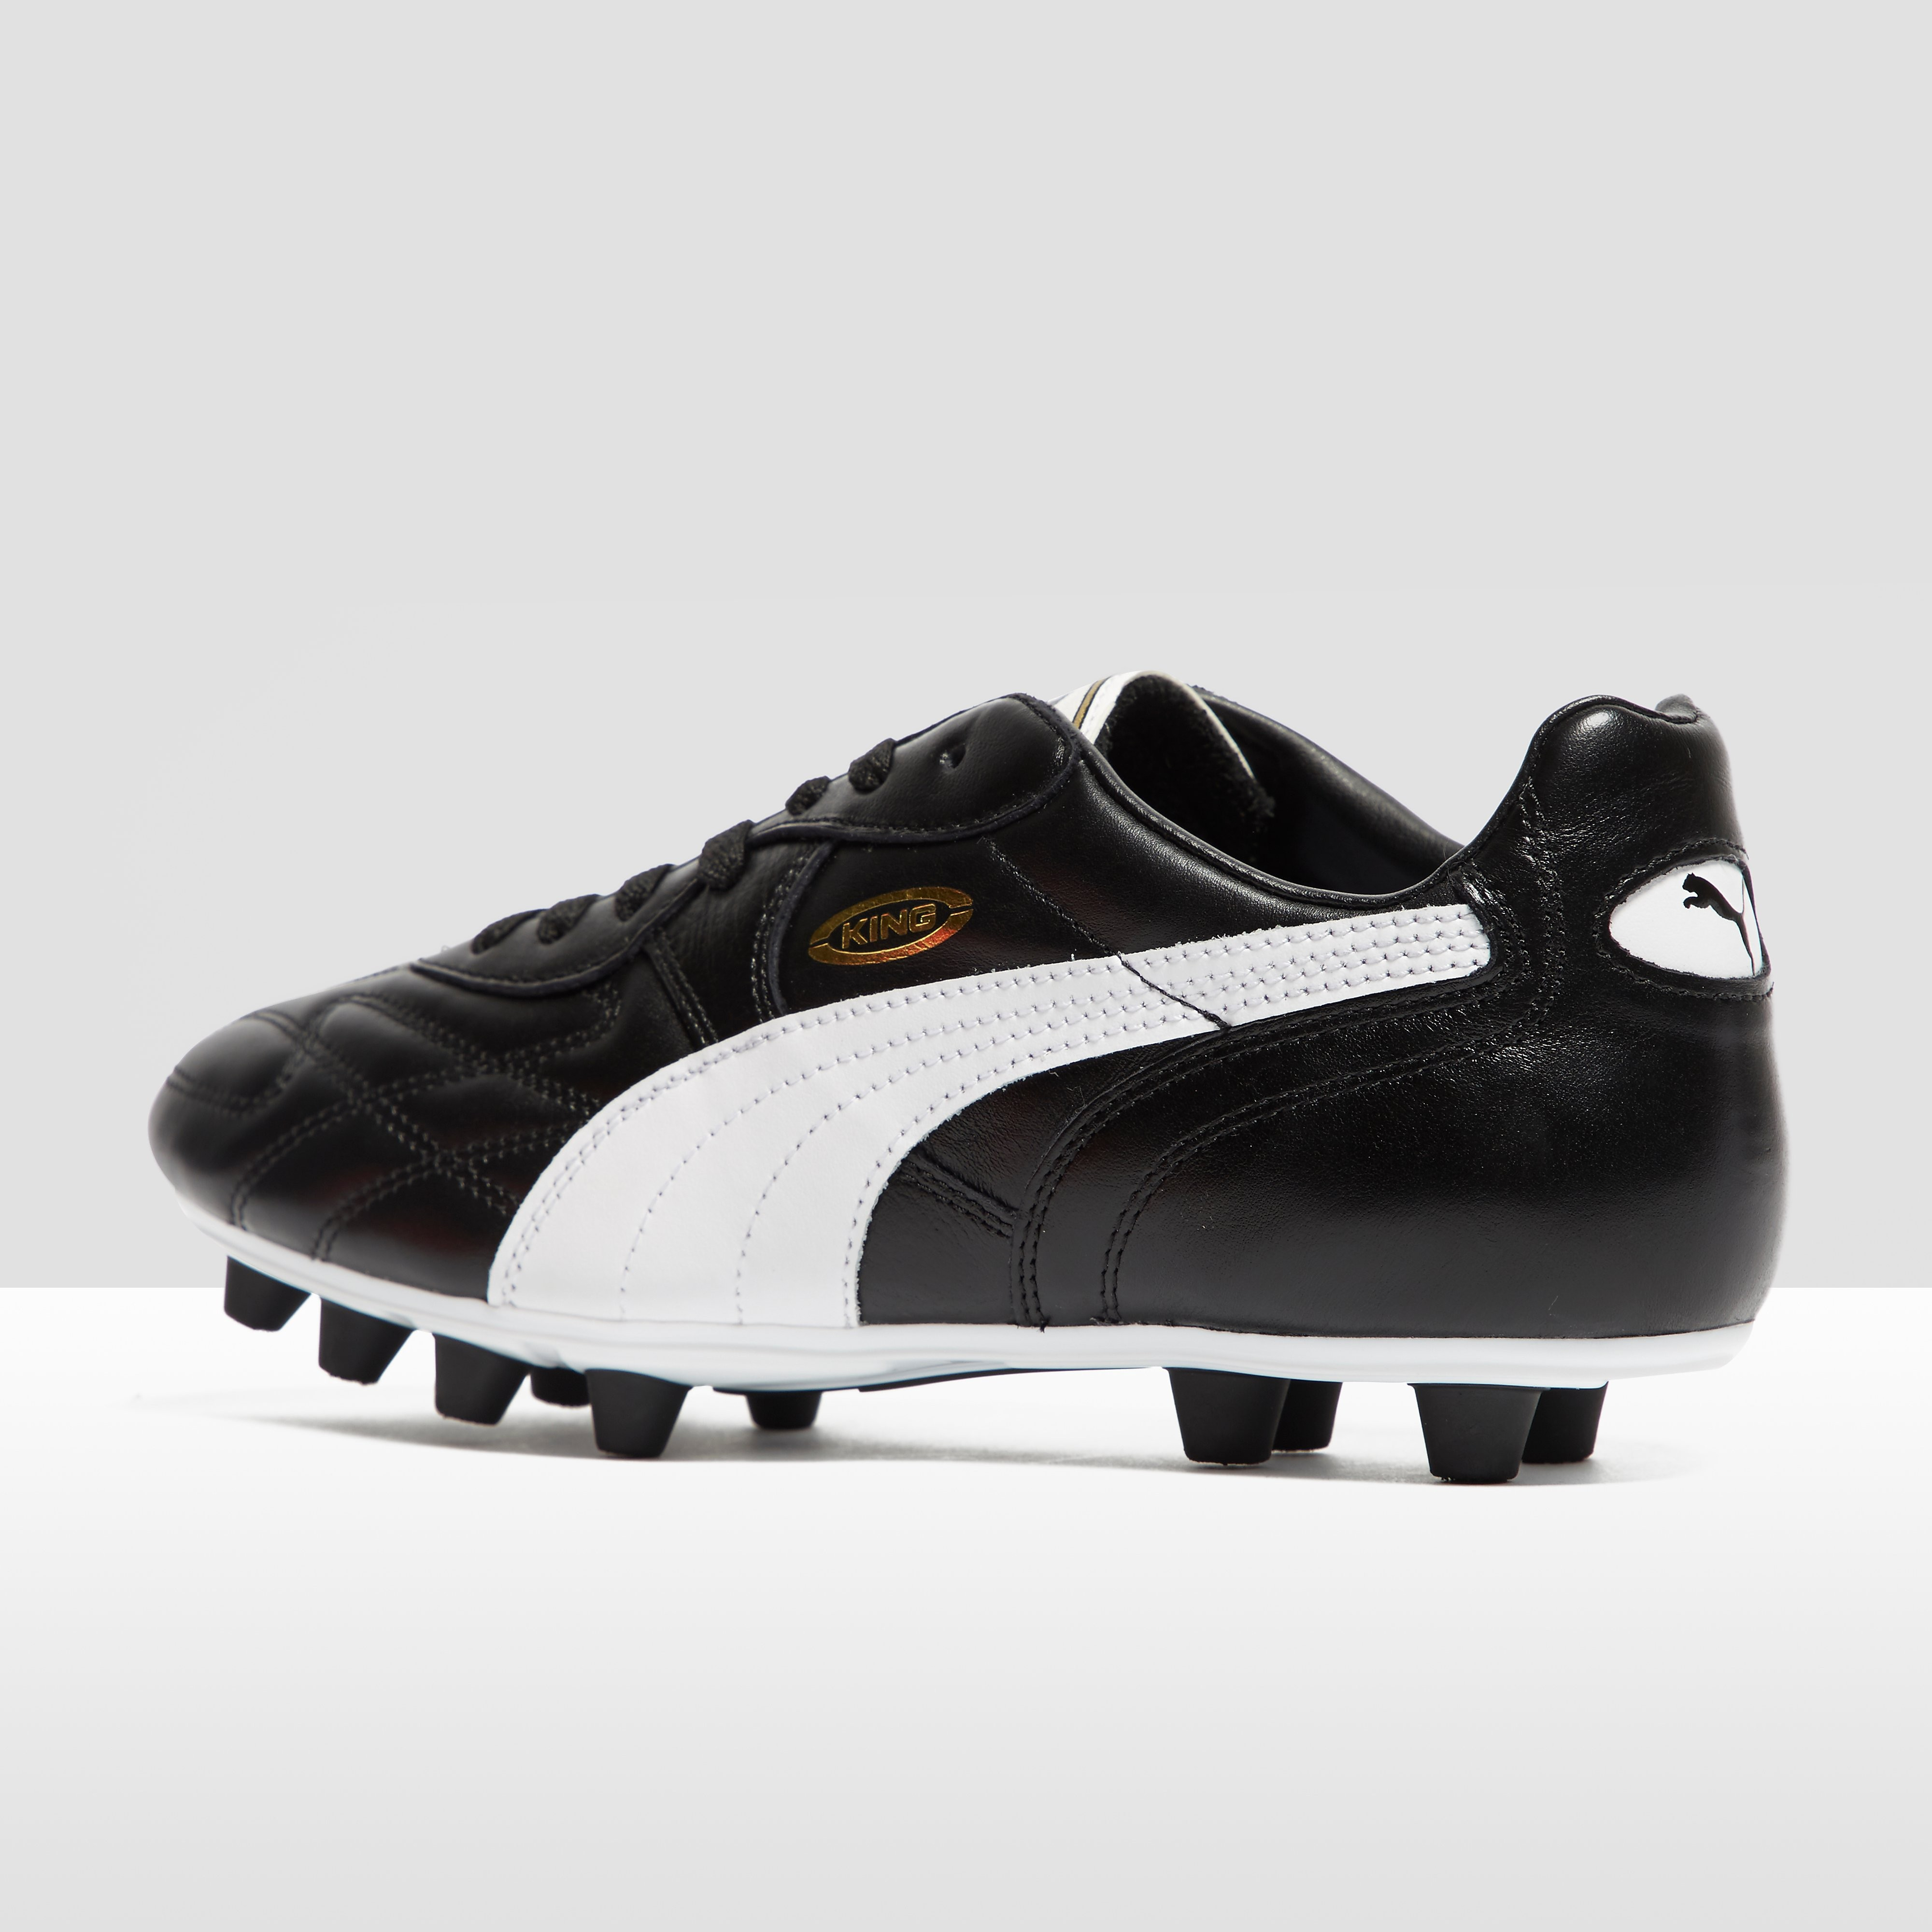 PUMA King Men's Football Boots